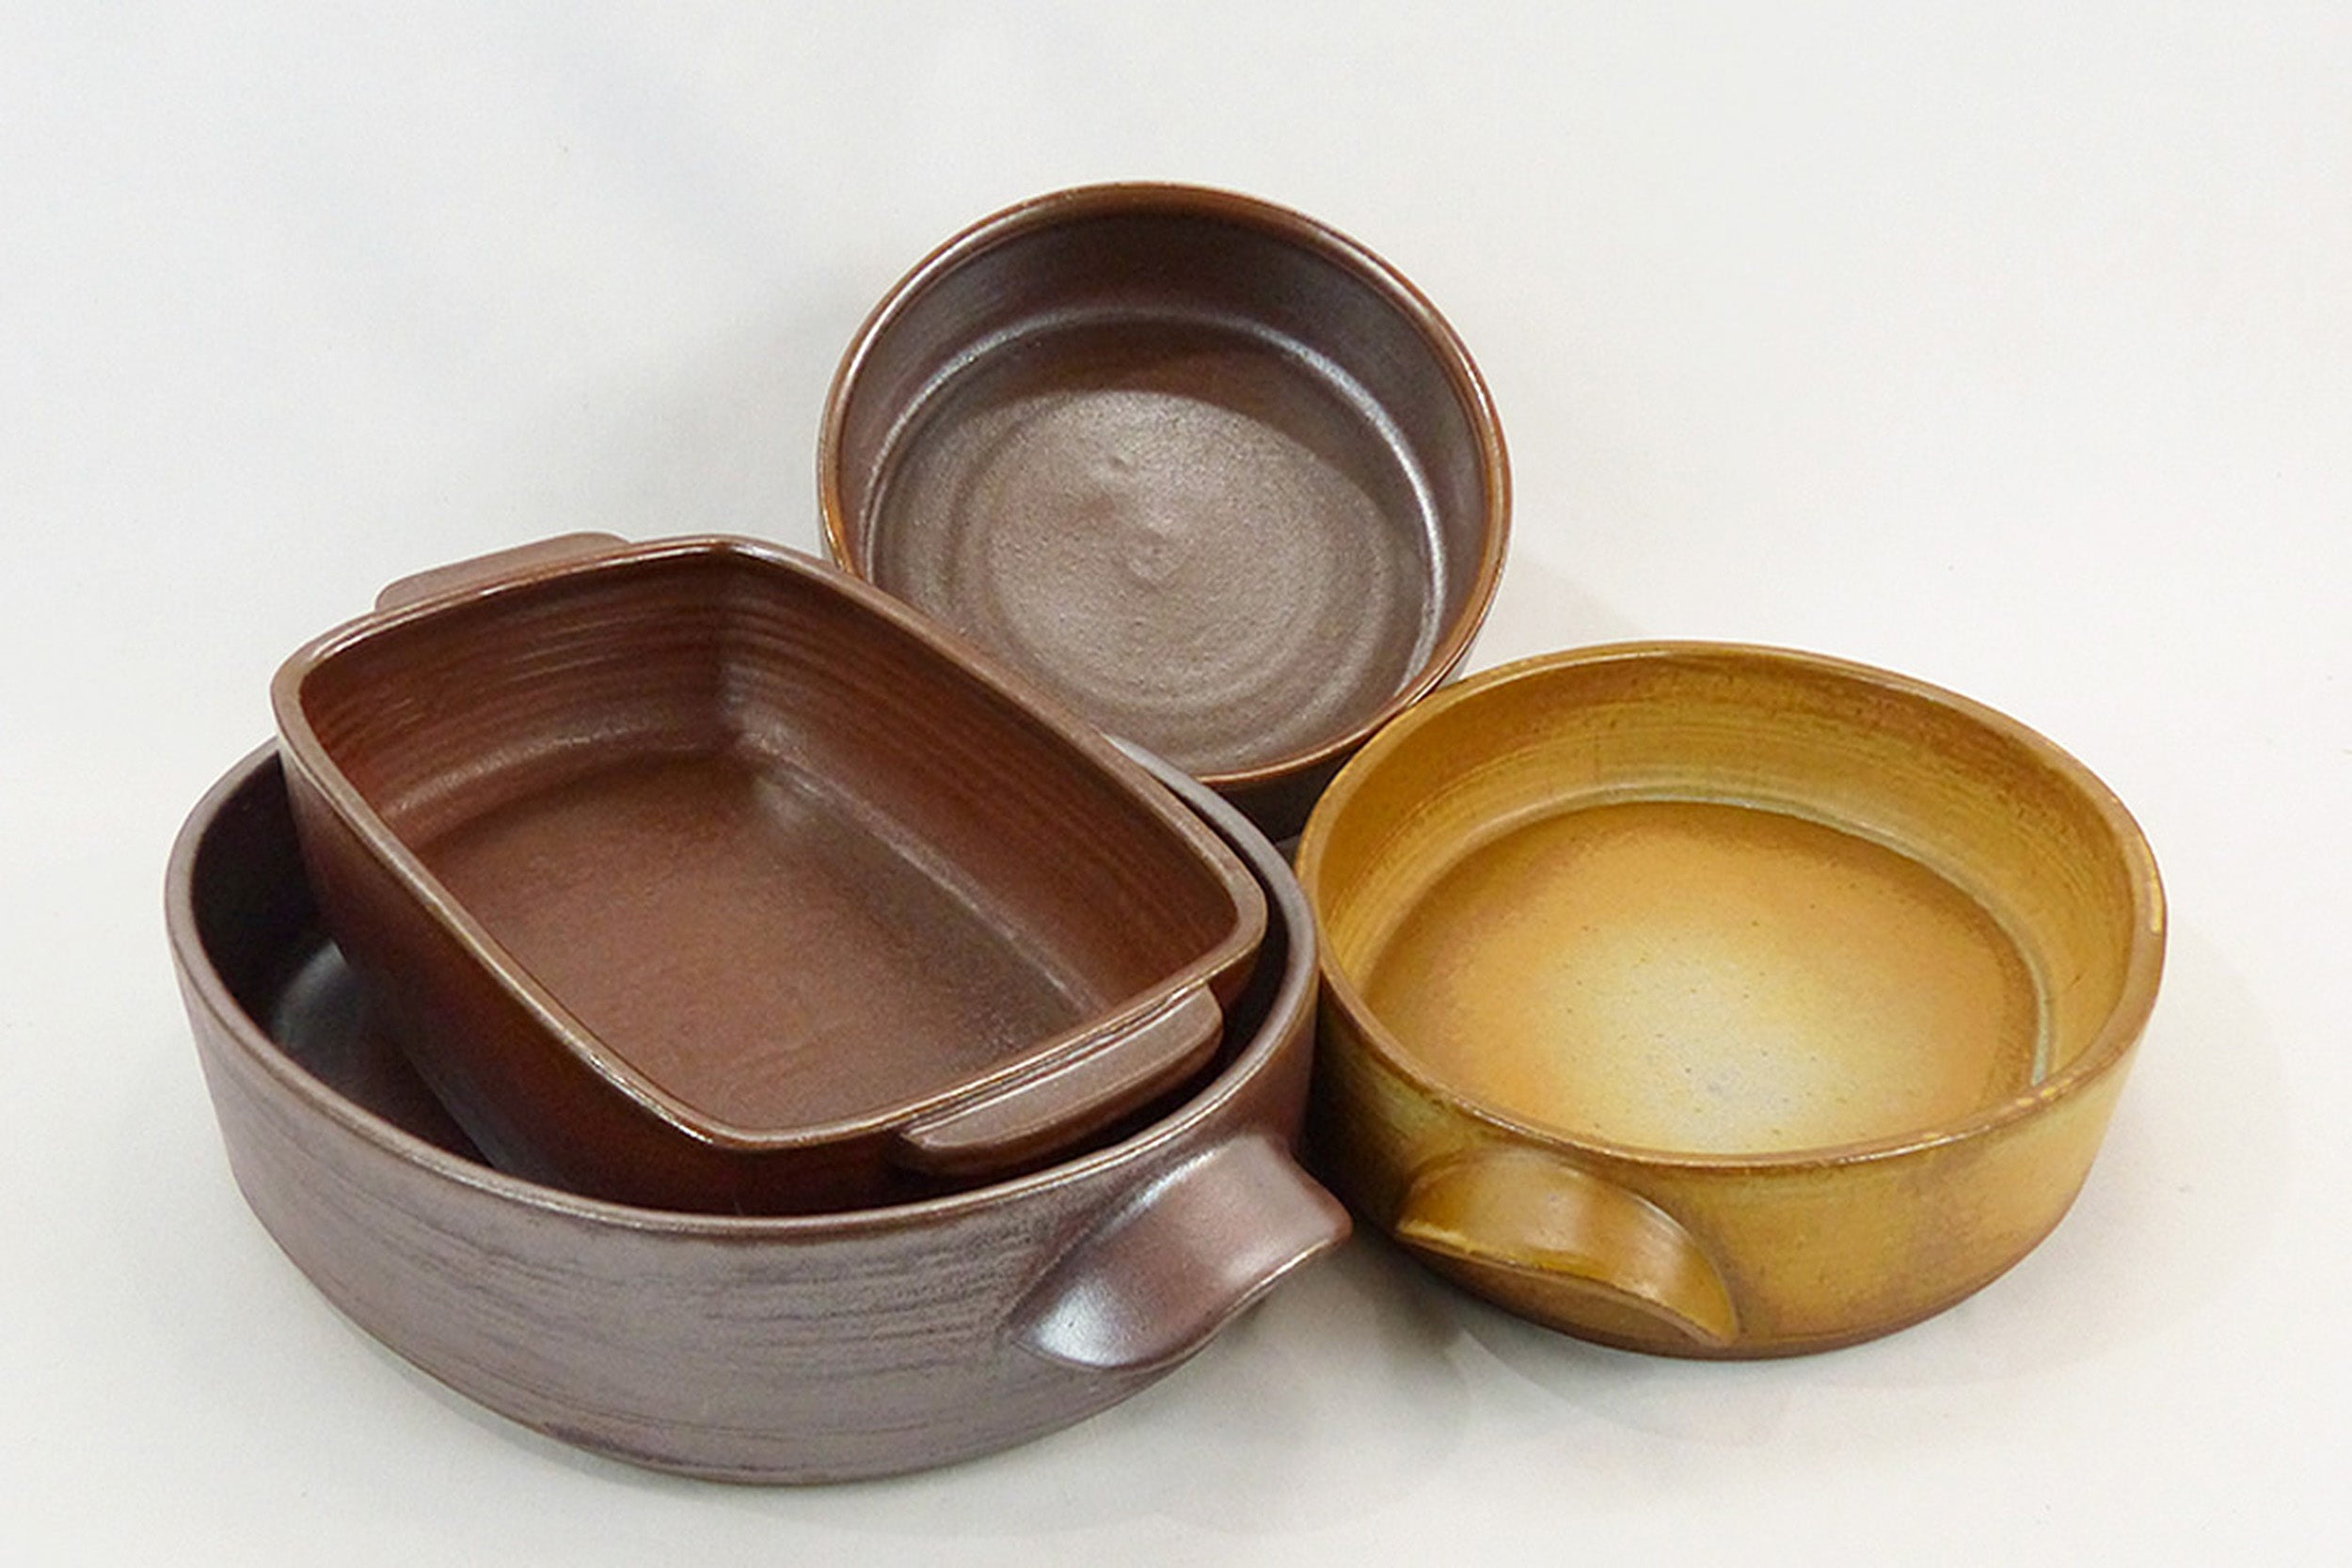 Four bakeware dishes.